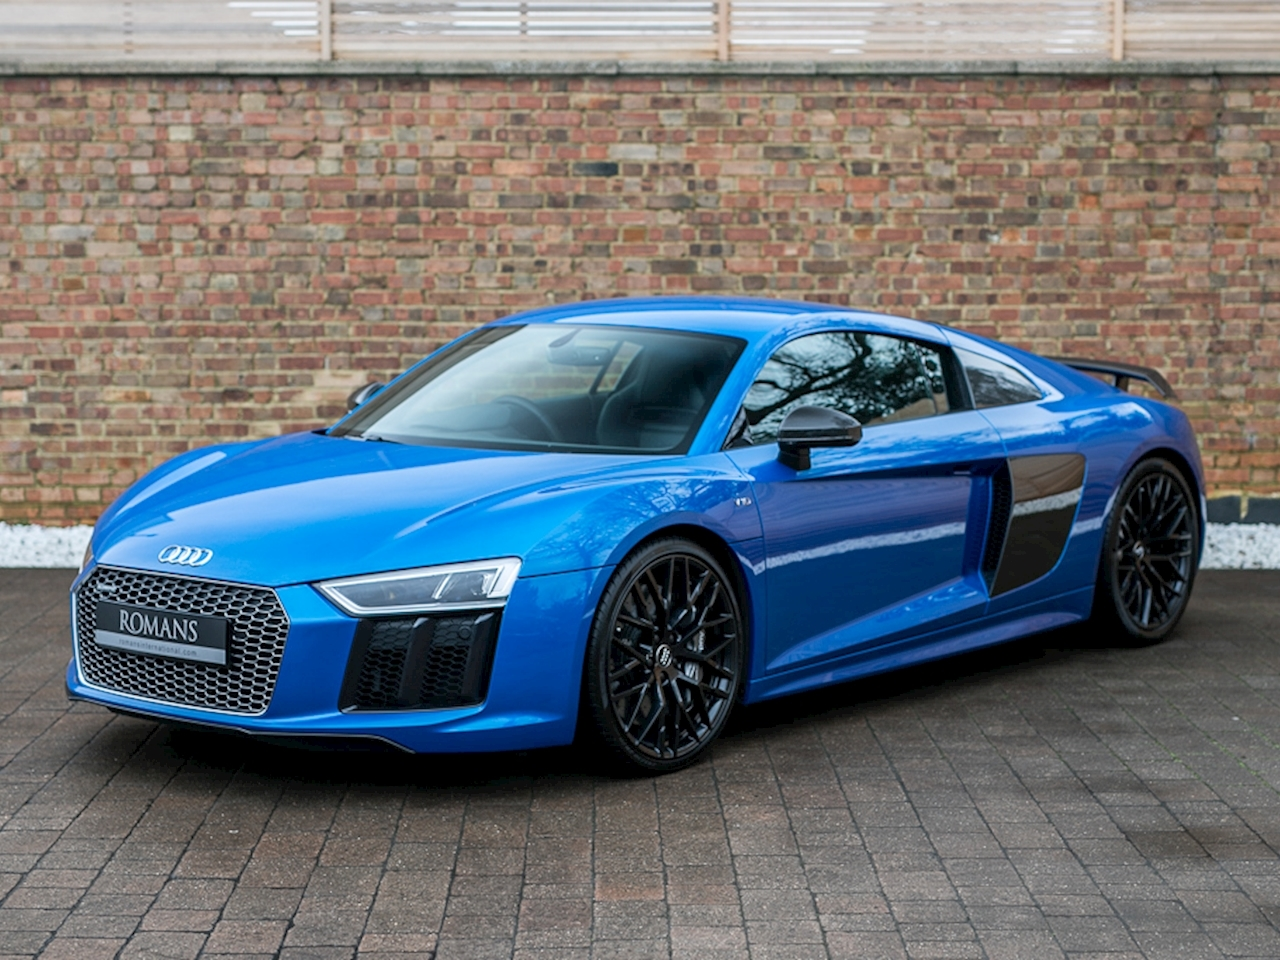 2015 used audi r8 v10 plus ara blue. Black Bedroom Furniture Sets. Home Design Ideas